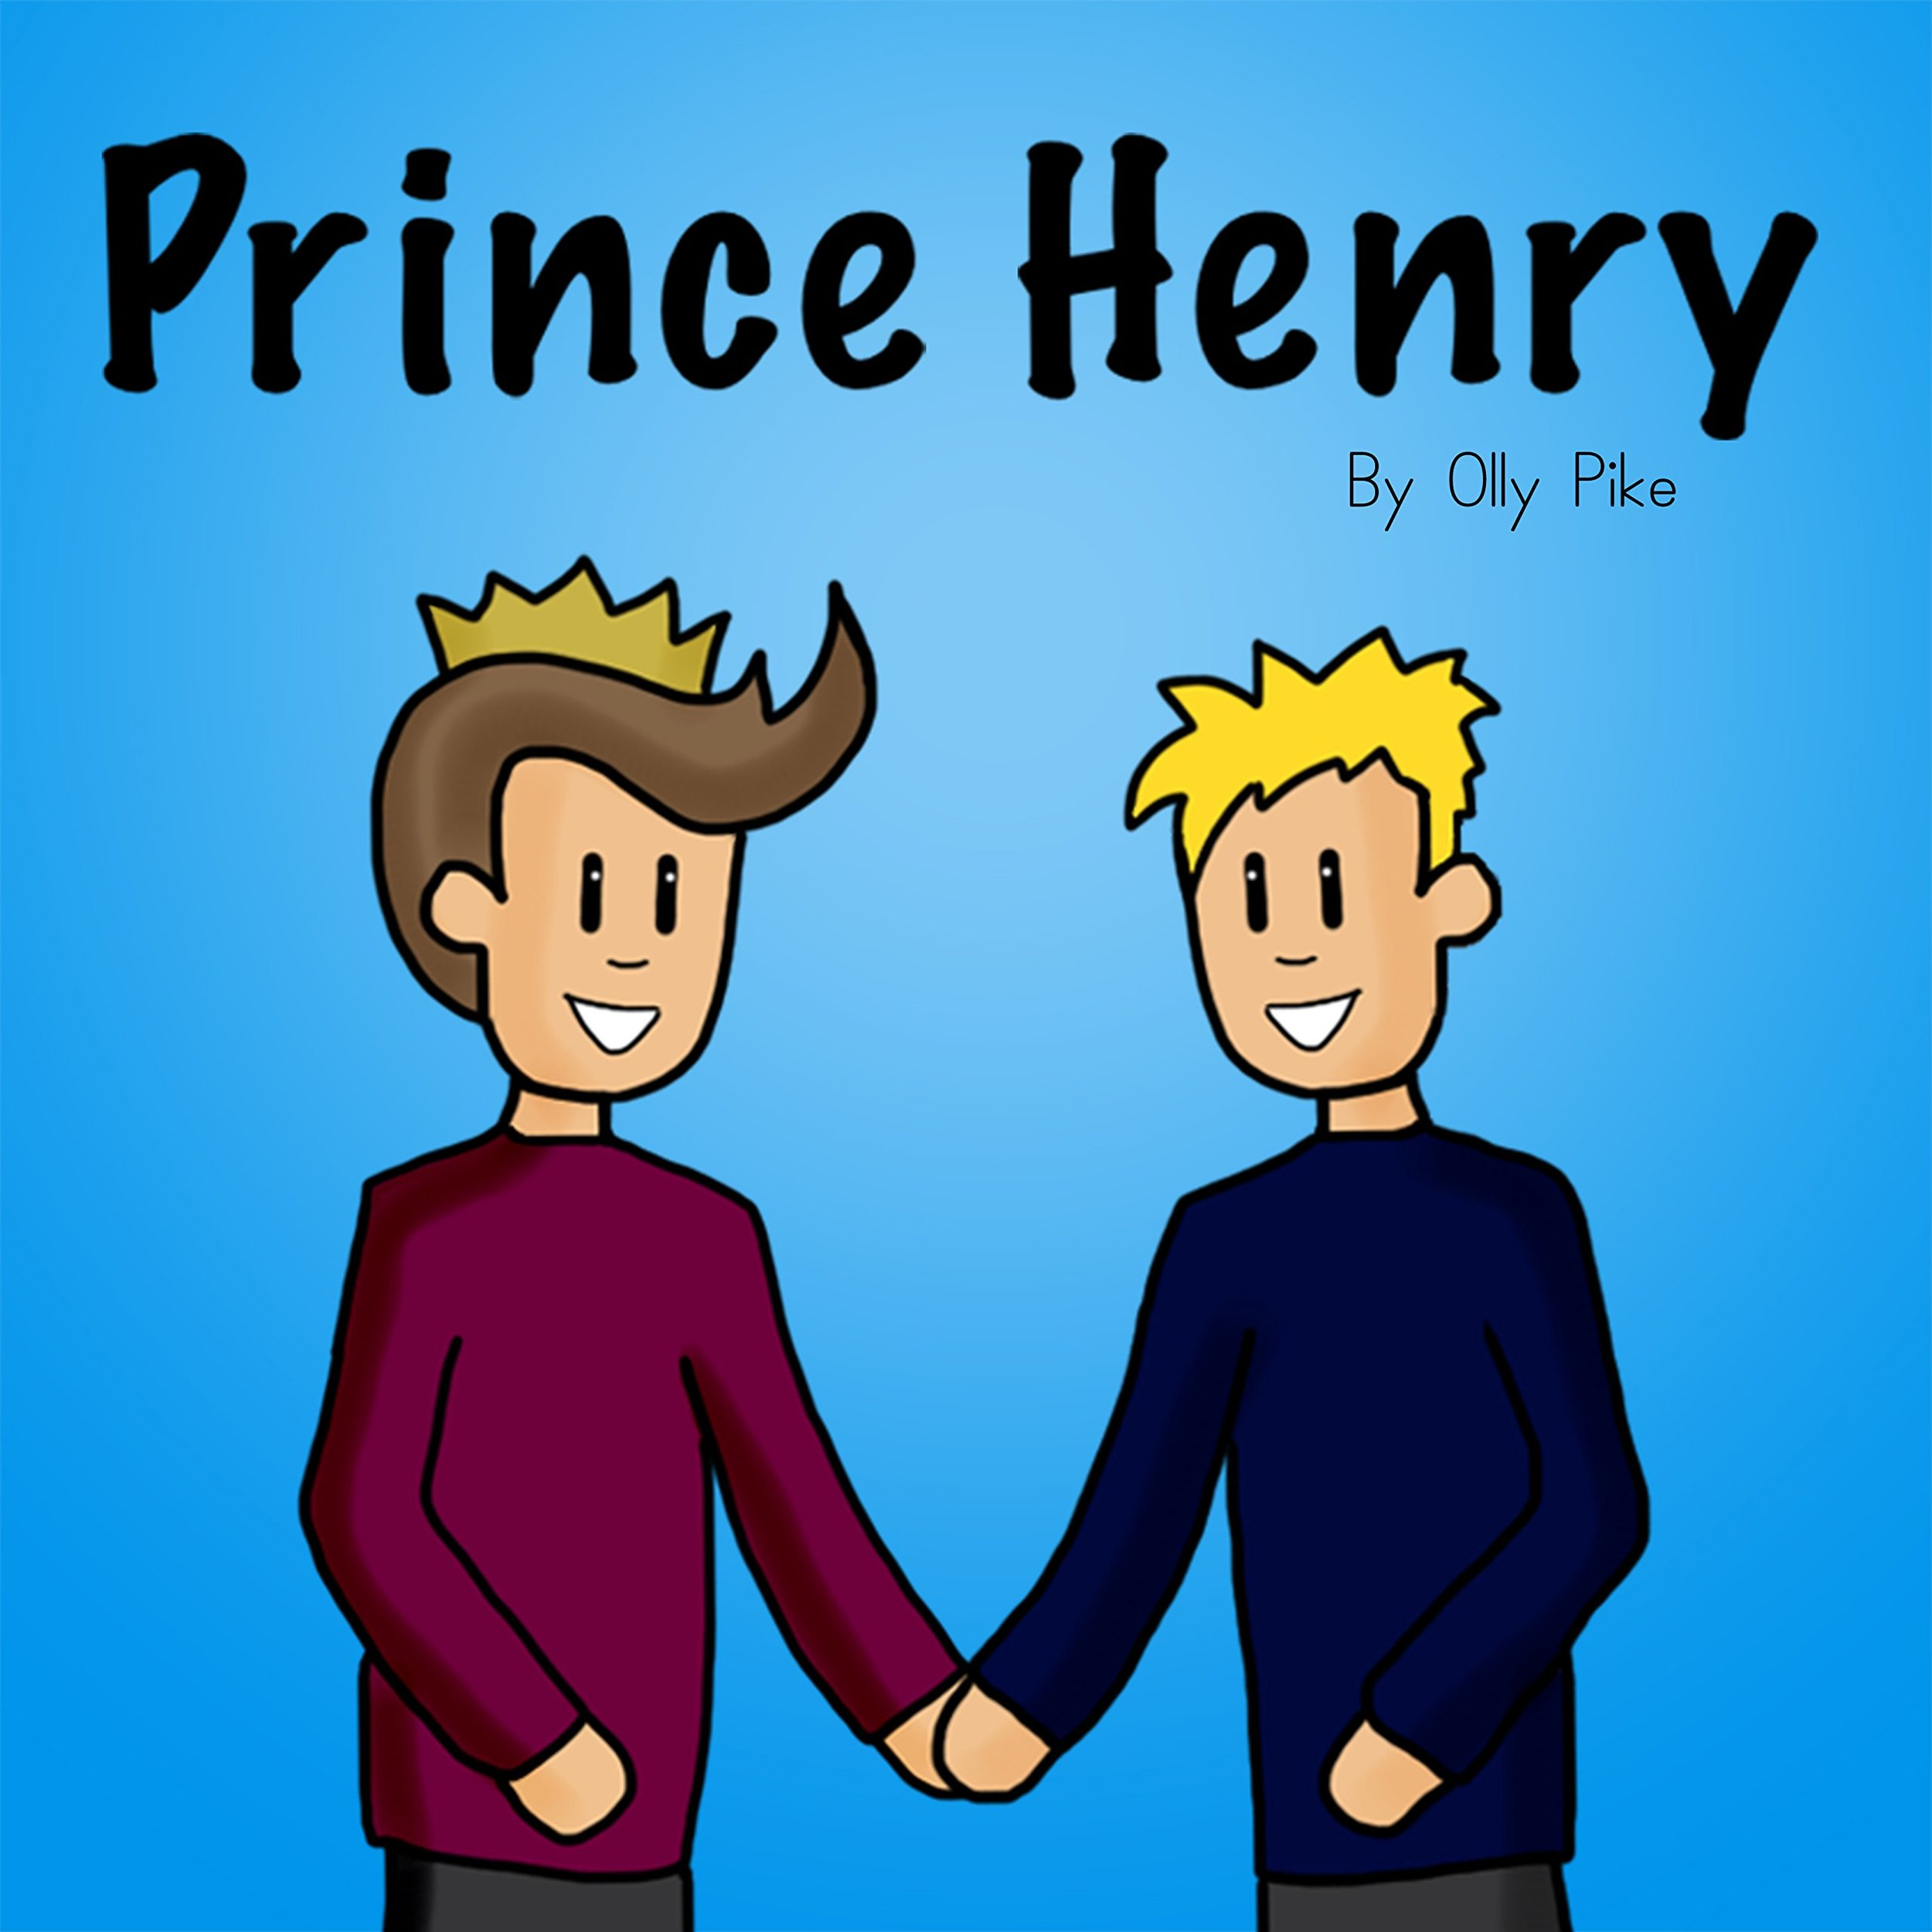 prince henryby olly pike - It is time for Prince Henry to find someone to marry, or so his parents think. Join Henry in his fairytale kingdom where certain laws apply when its comes to choosing who you can spend your life with.A fairytale romance intended for young readers, 'Prince Henry' delivers a positive message of both love and equality.